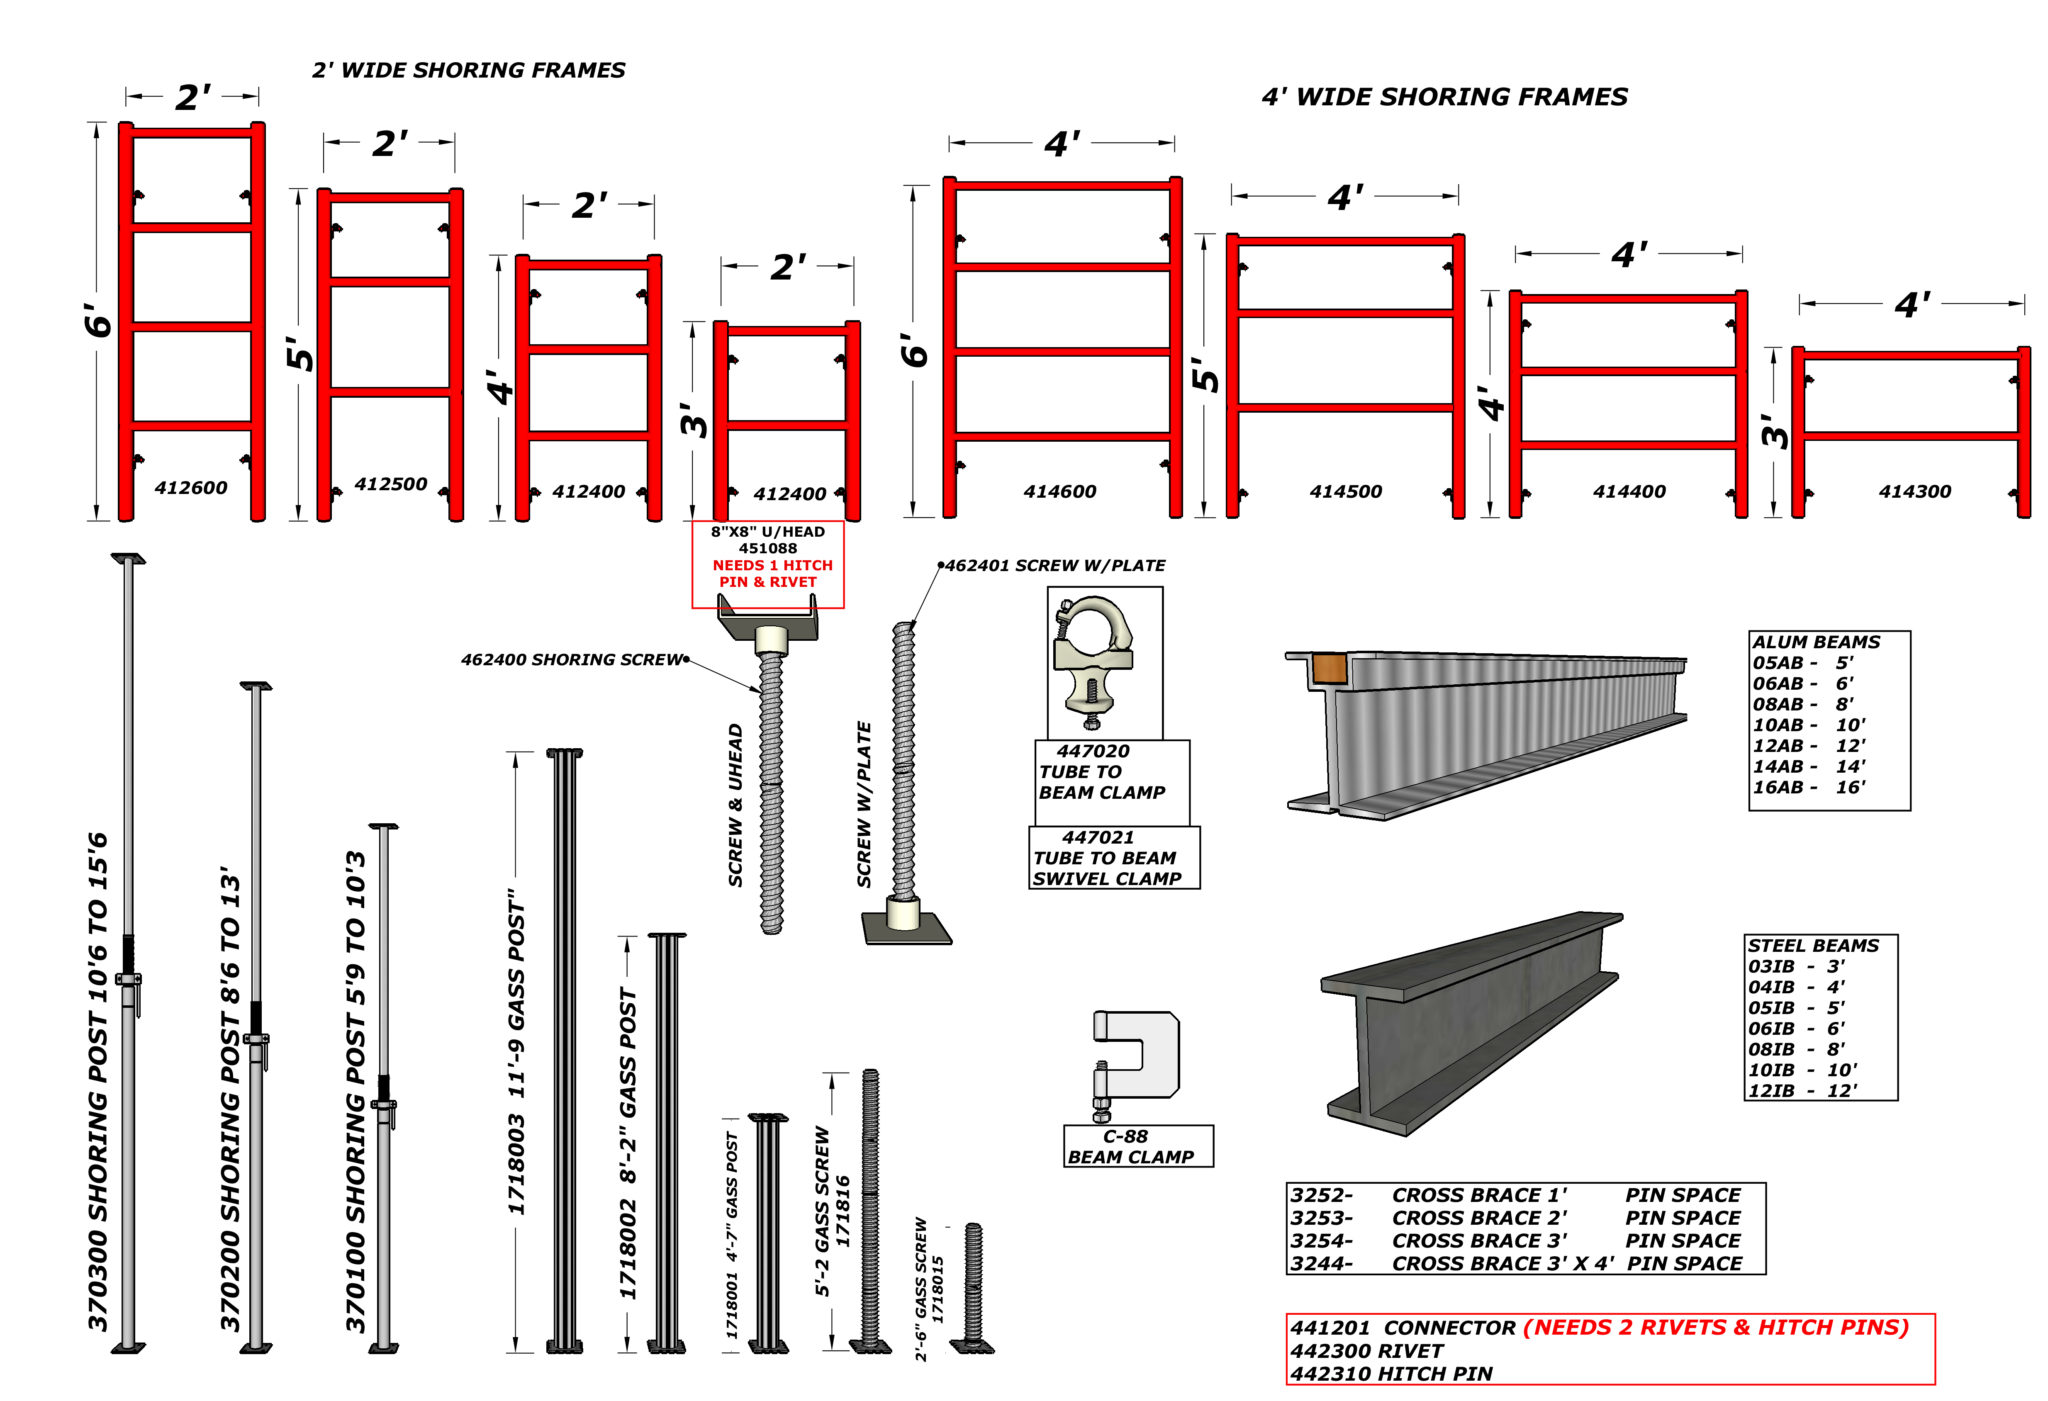 Advantage Scaffolding Products